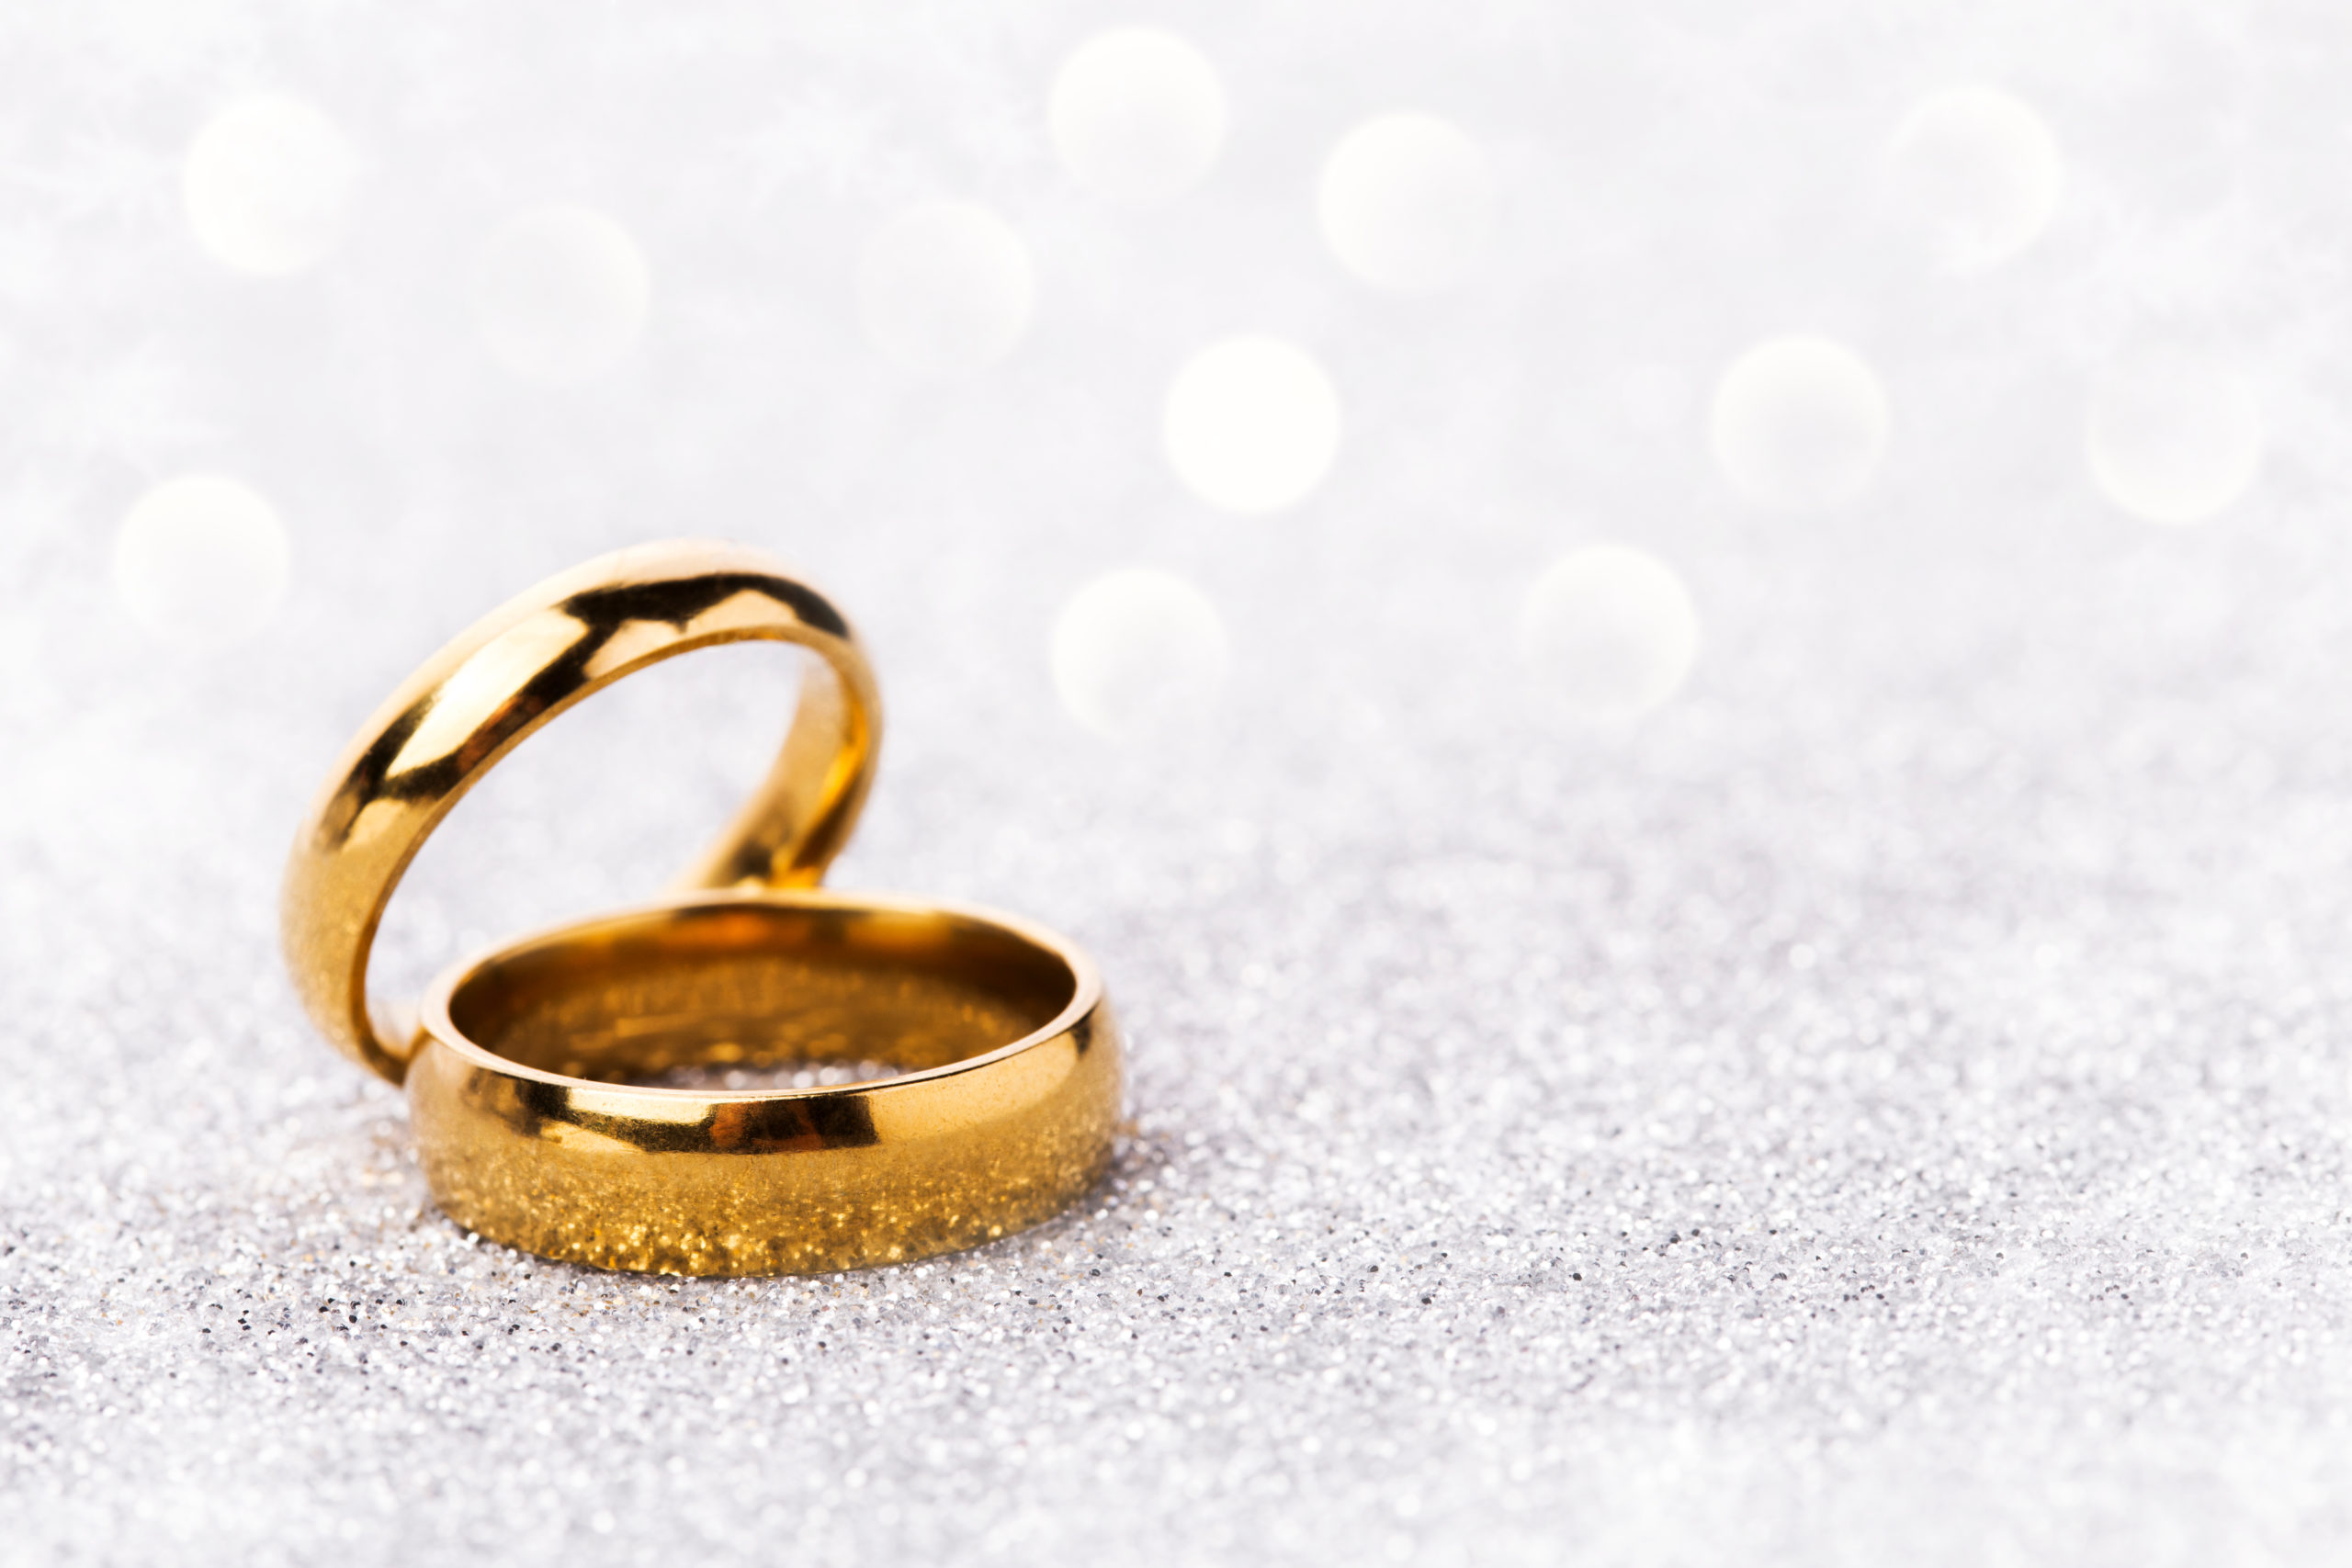 Wedding,Ring,Celebration,Background,With,Two,Gold,Rings